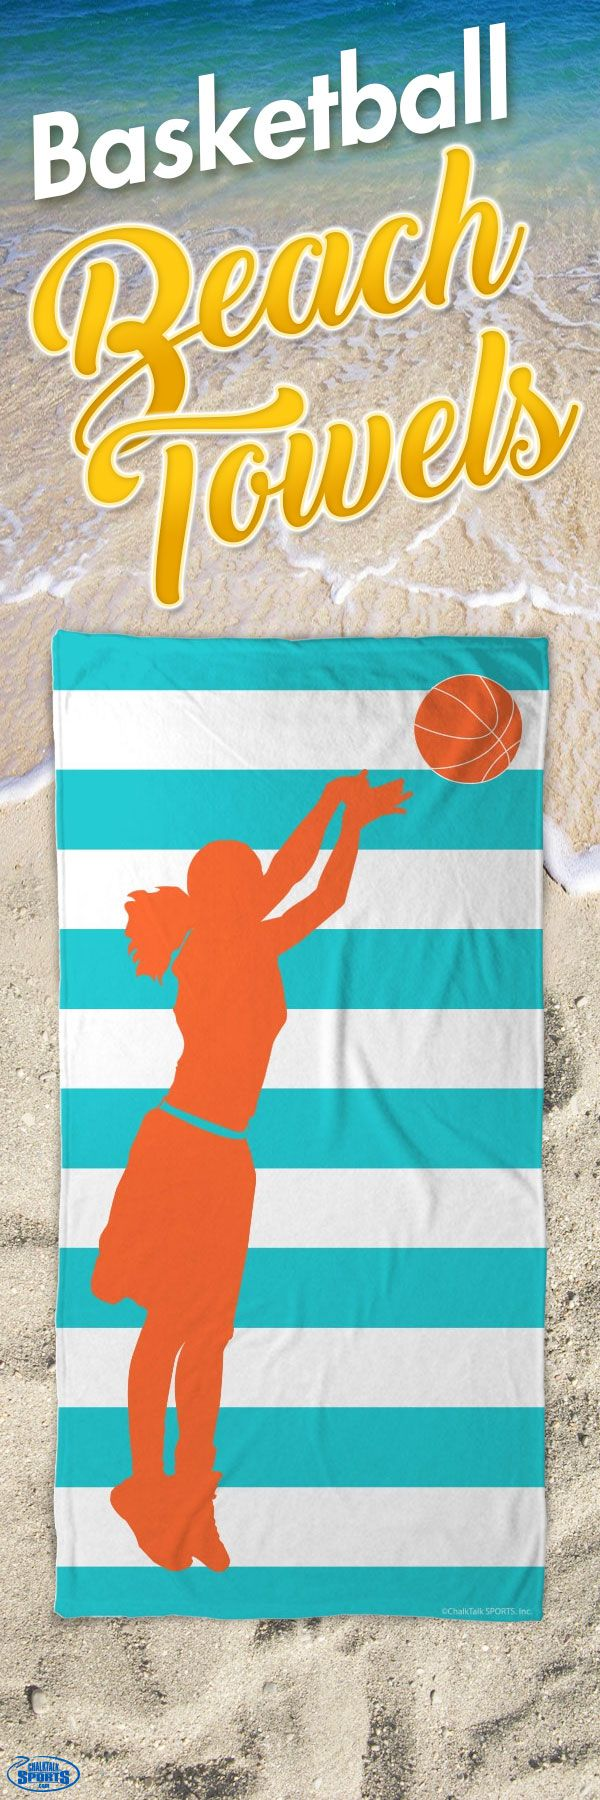 Have Fun At The Beach All Summer With This Cute Basketball Towel Gifts Pinterest